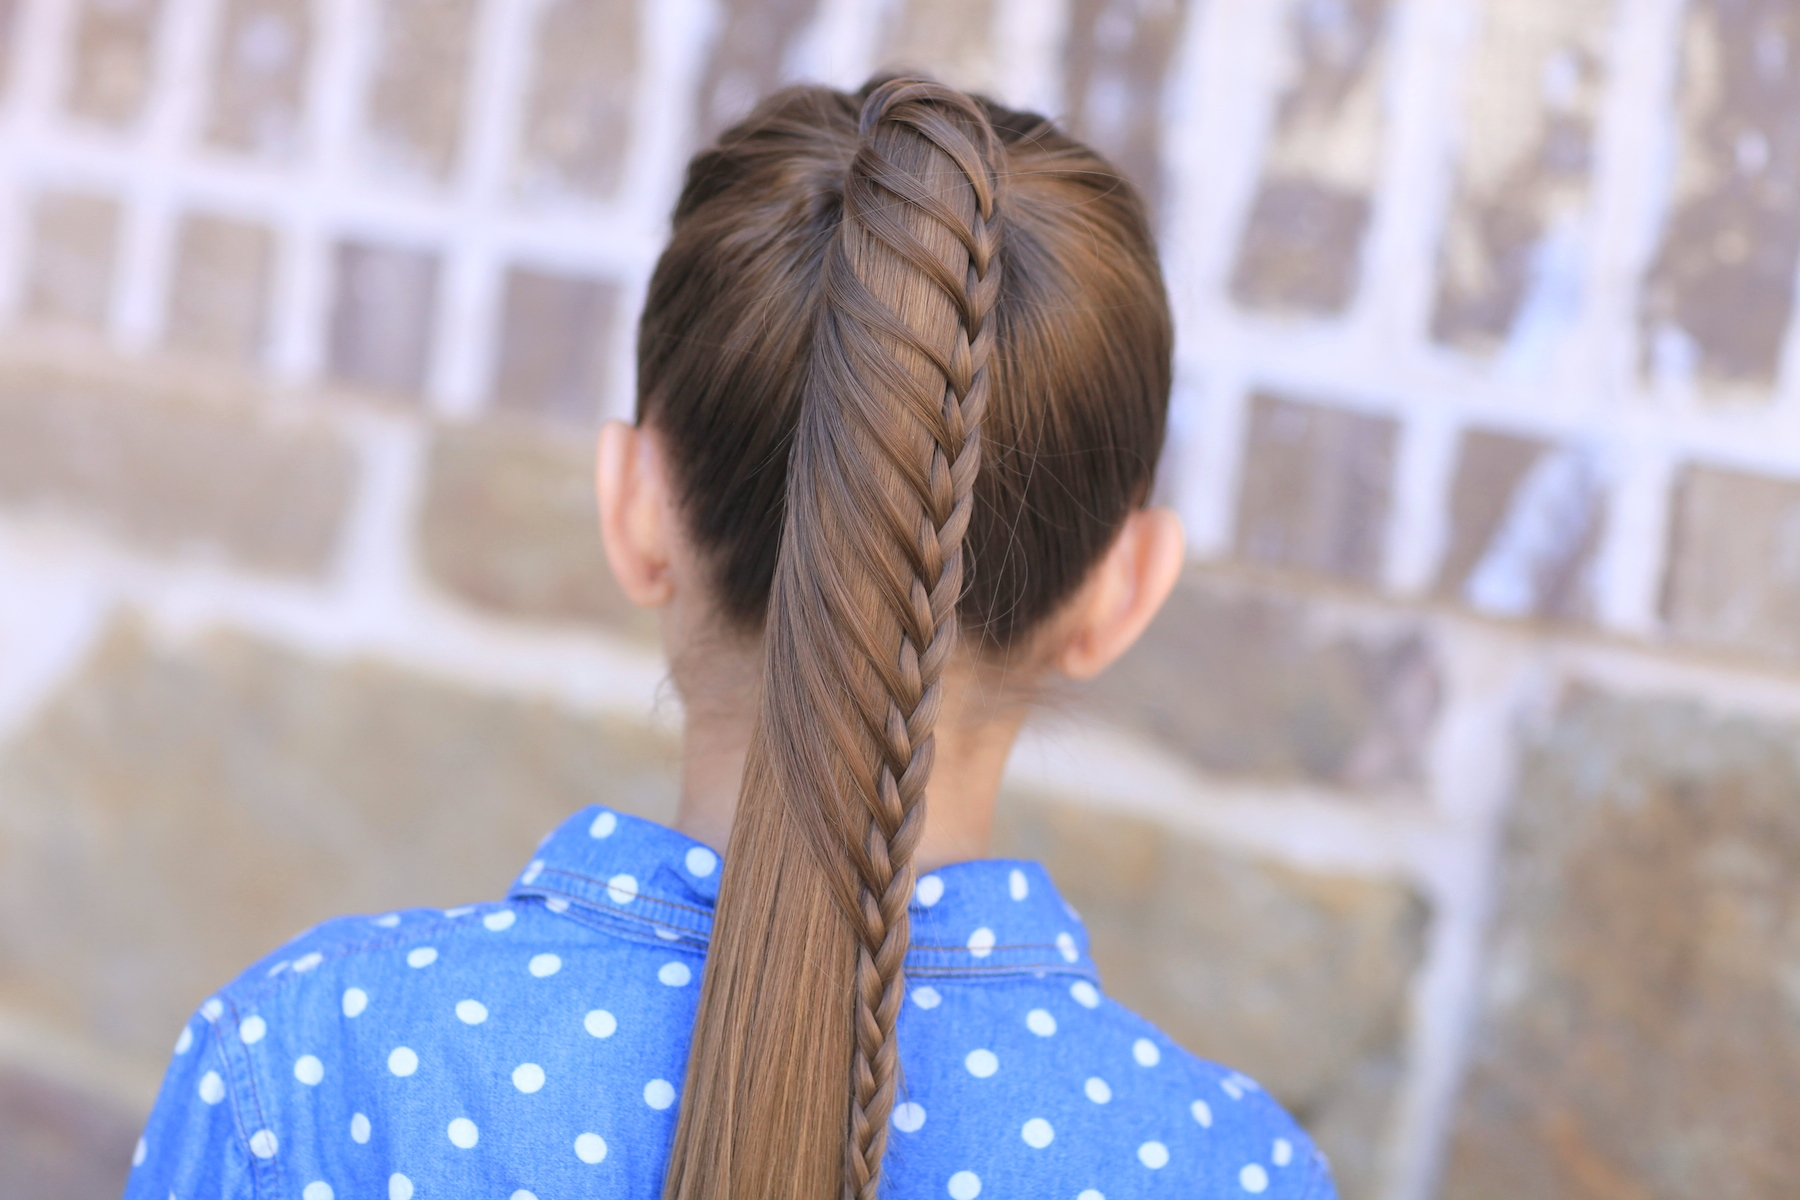 Beautiful Hairstyles For 11 Year Olds : Hair wrapped ponytails cute girls hairstyles